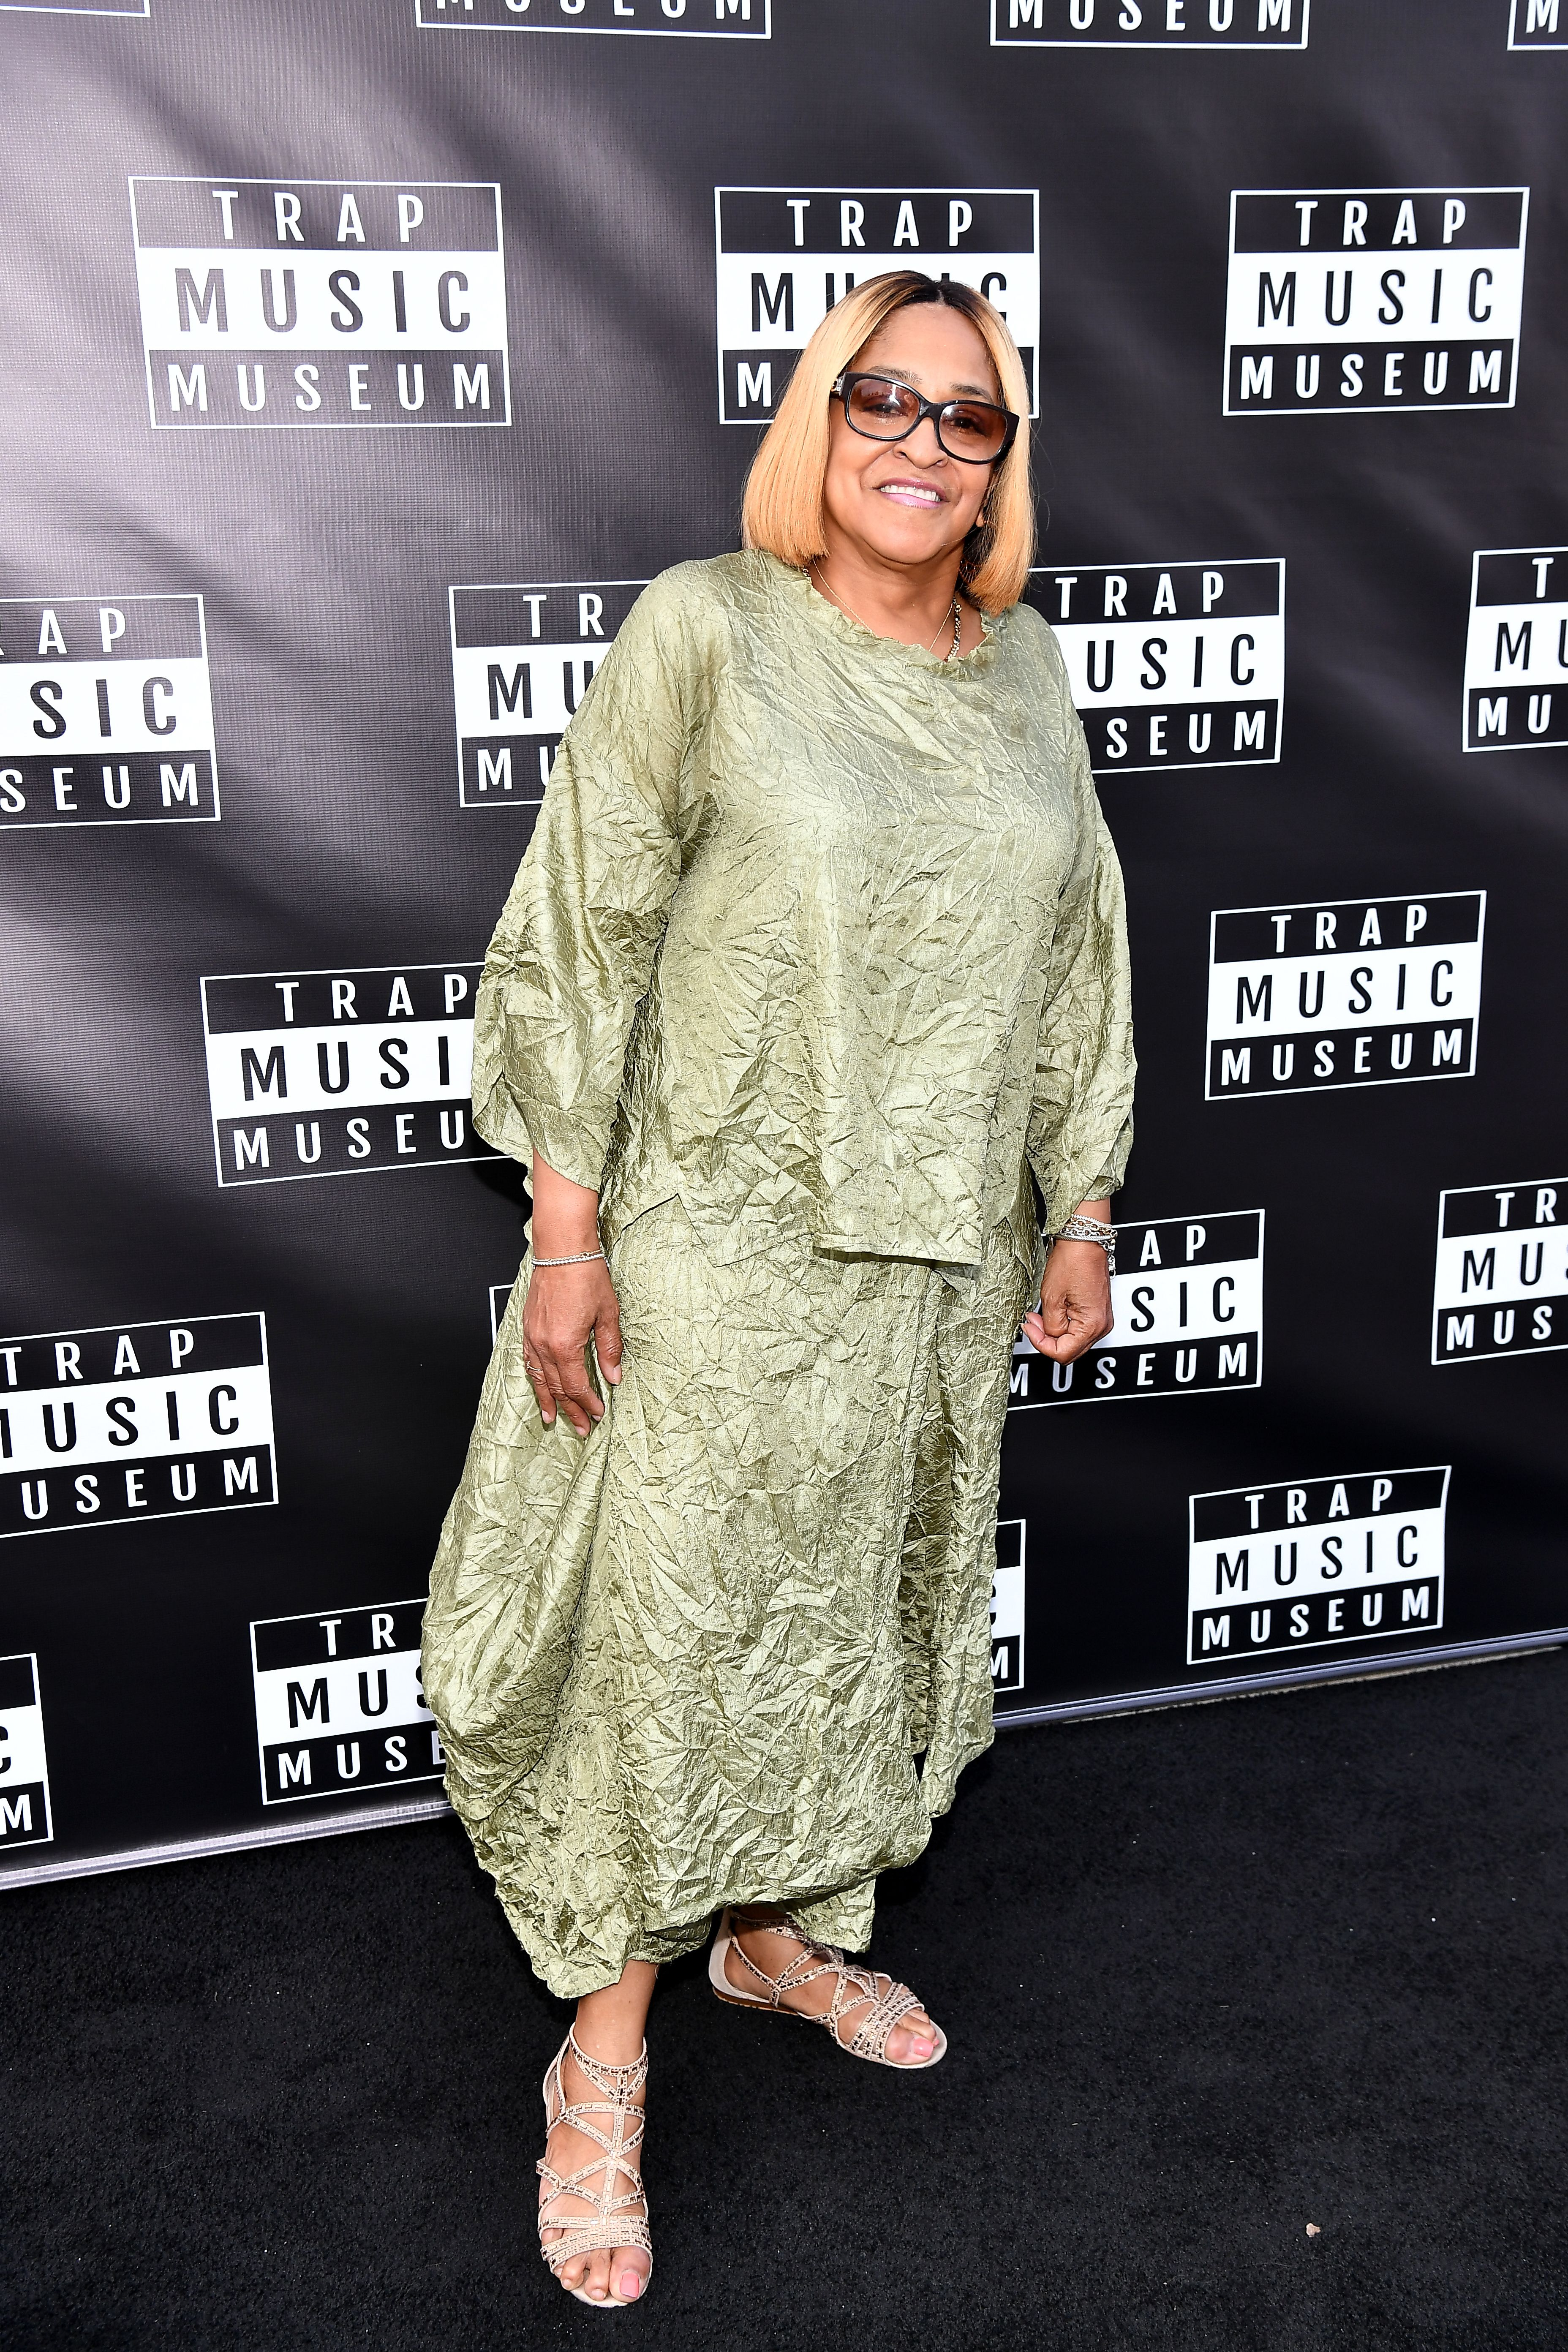 T.I's sister Precious Harris at the Trap Music Museum attending the Trap Music Museum VIP Preview on 29 September 2018 in Atlanta, Georgia. │Photo: Getty Images